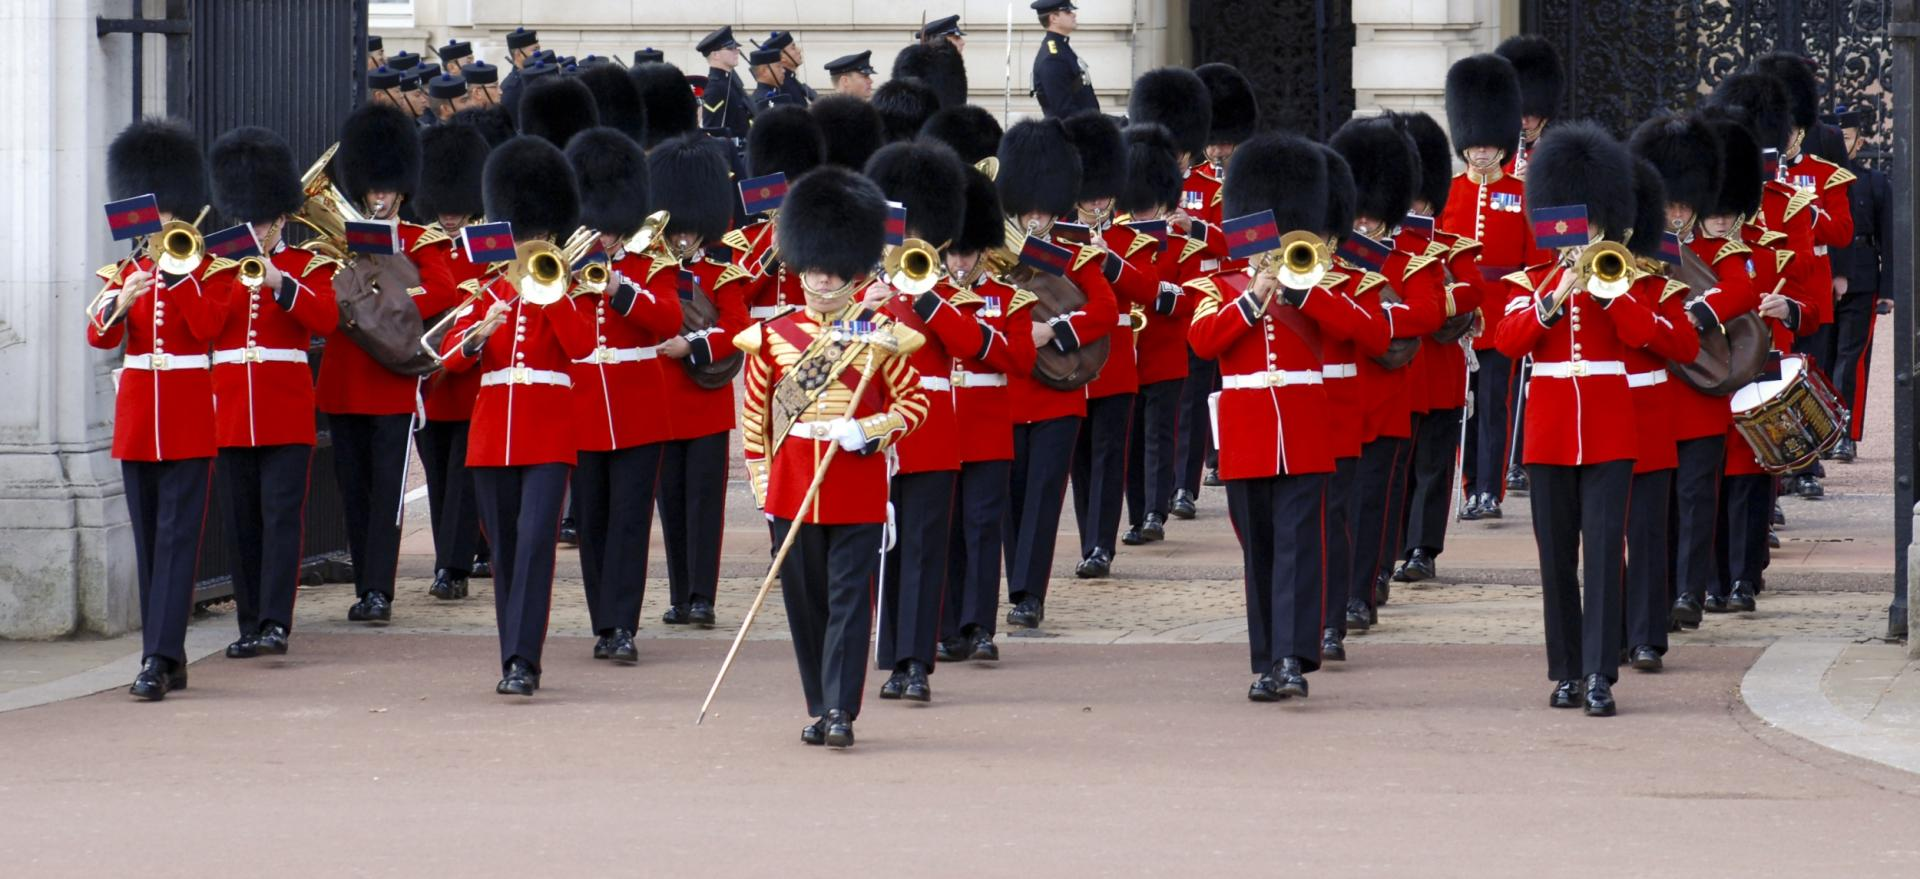 El cambio de guardia en el Buckingham Palace de Londres